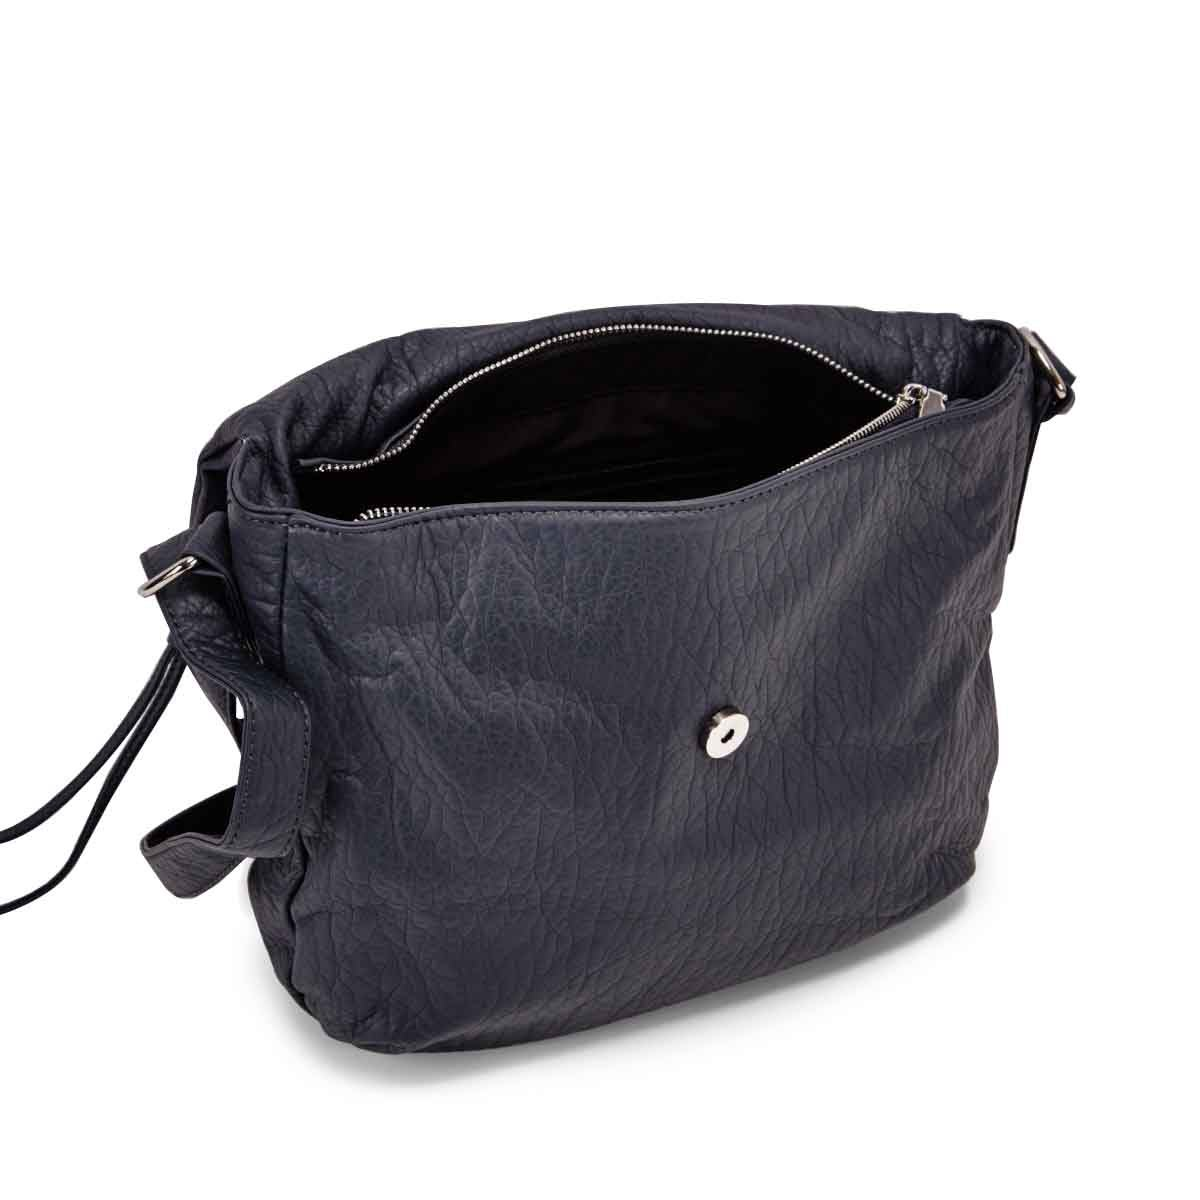 Lds blueberry crossbody messenger bag